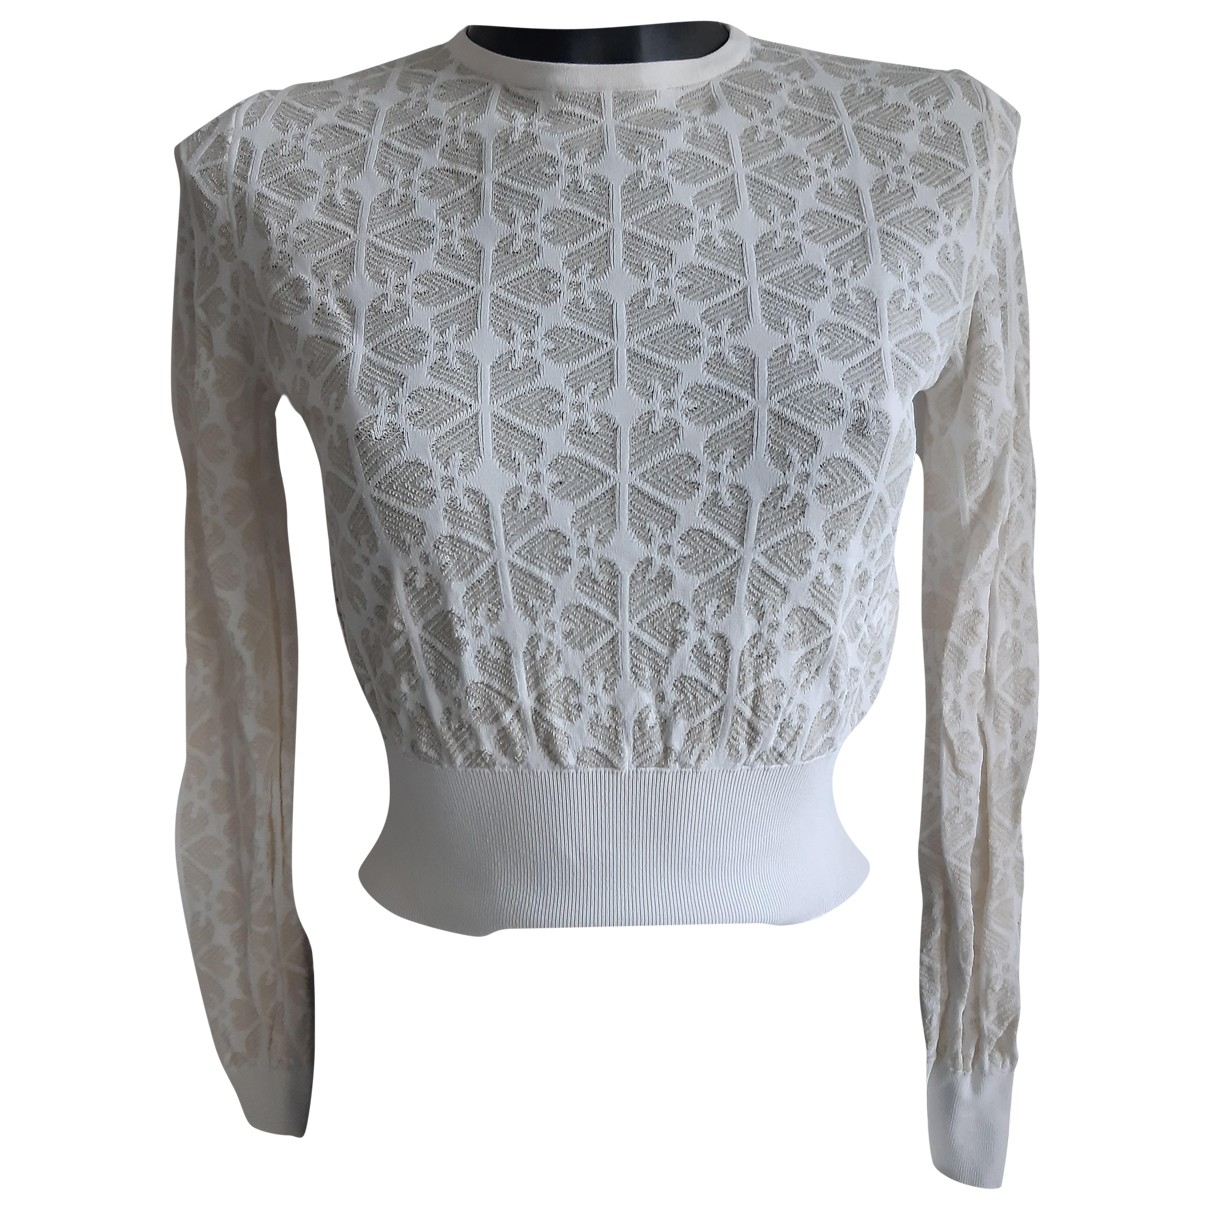 Alexander Mcqueen \N White Knitwear for Women S International